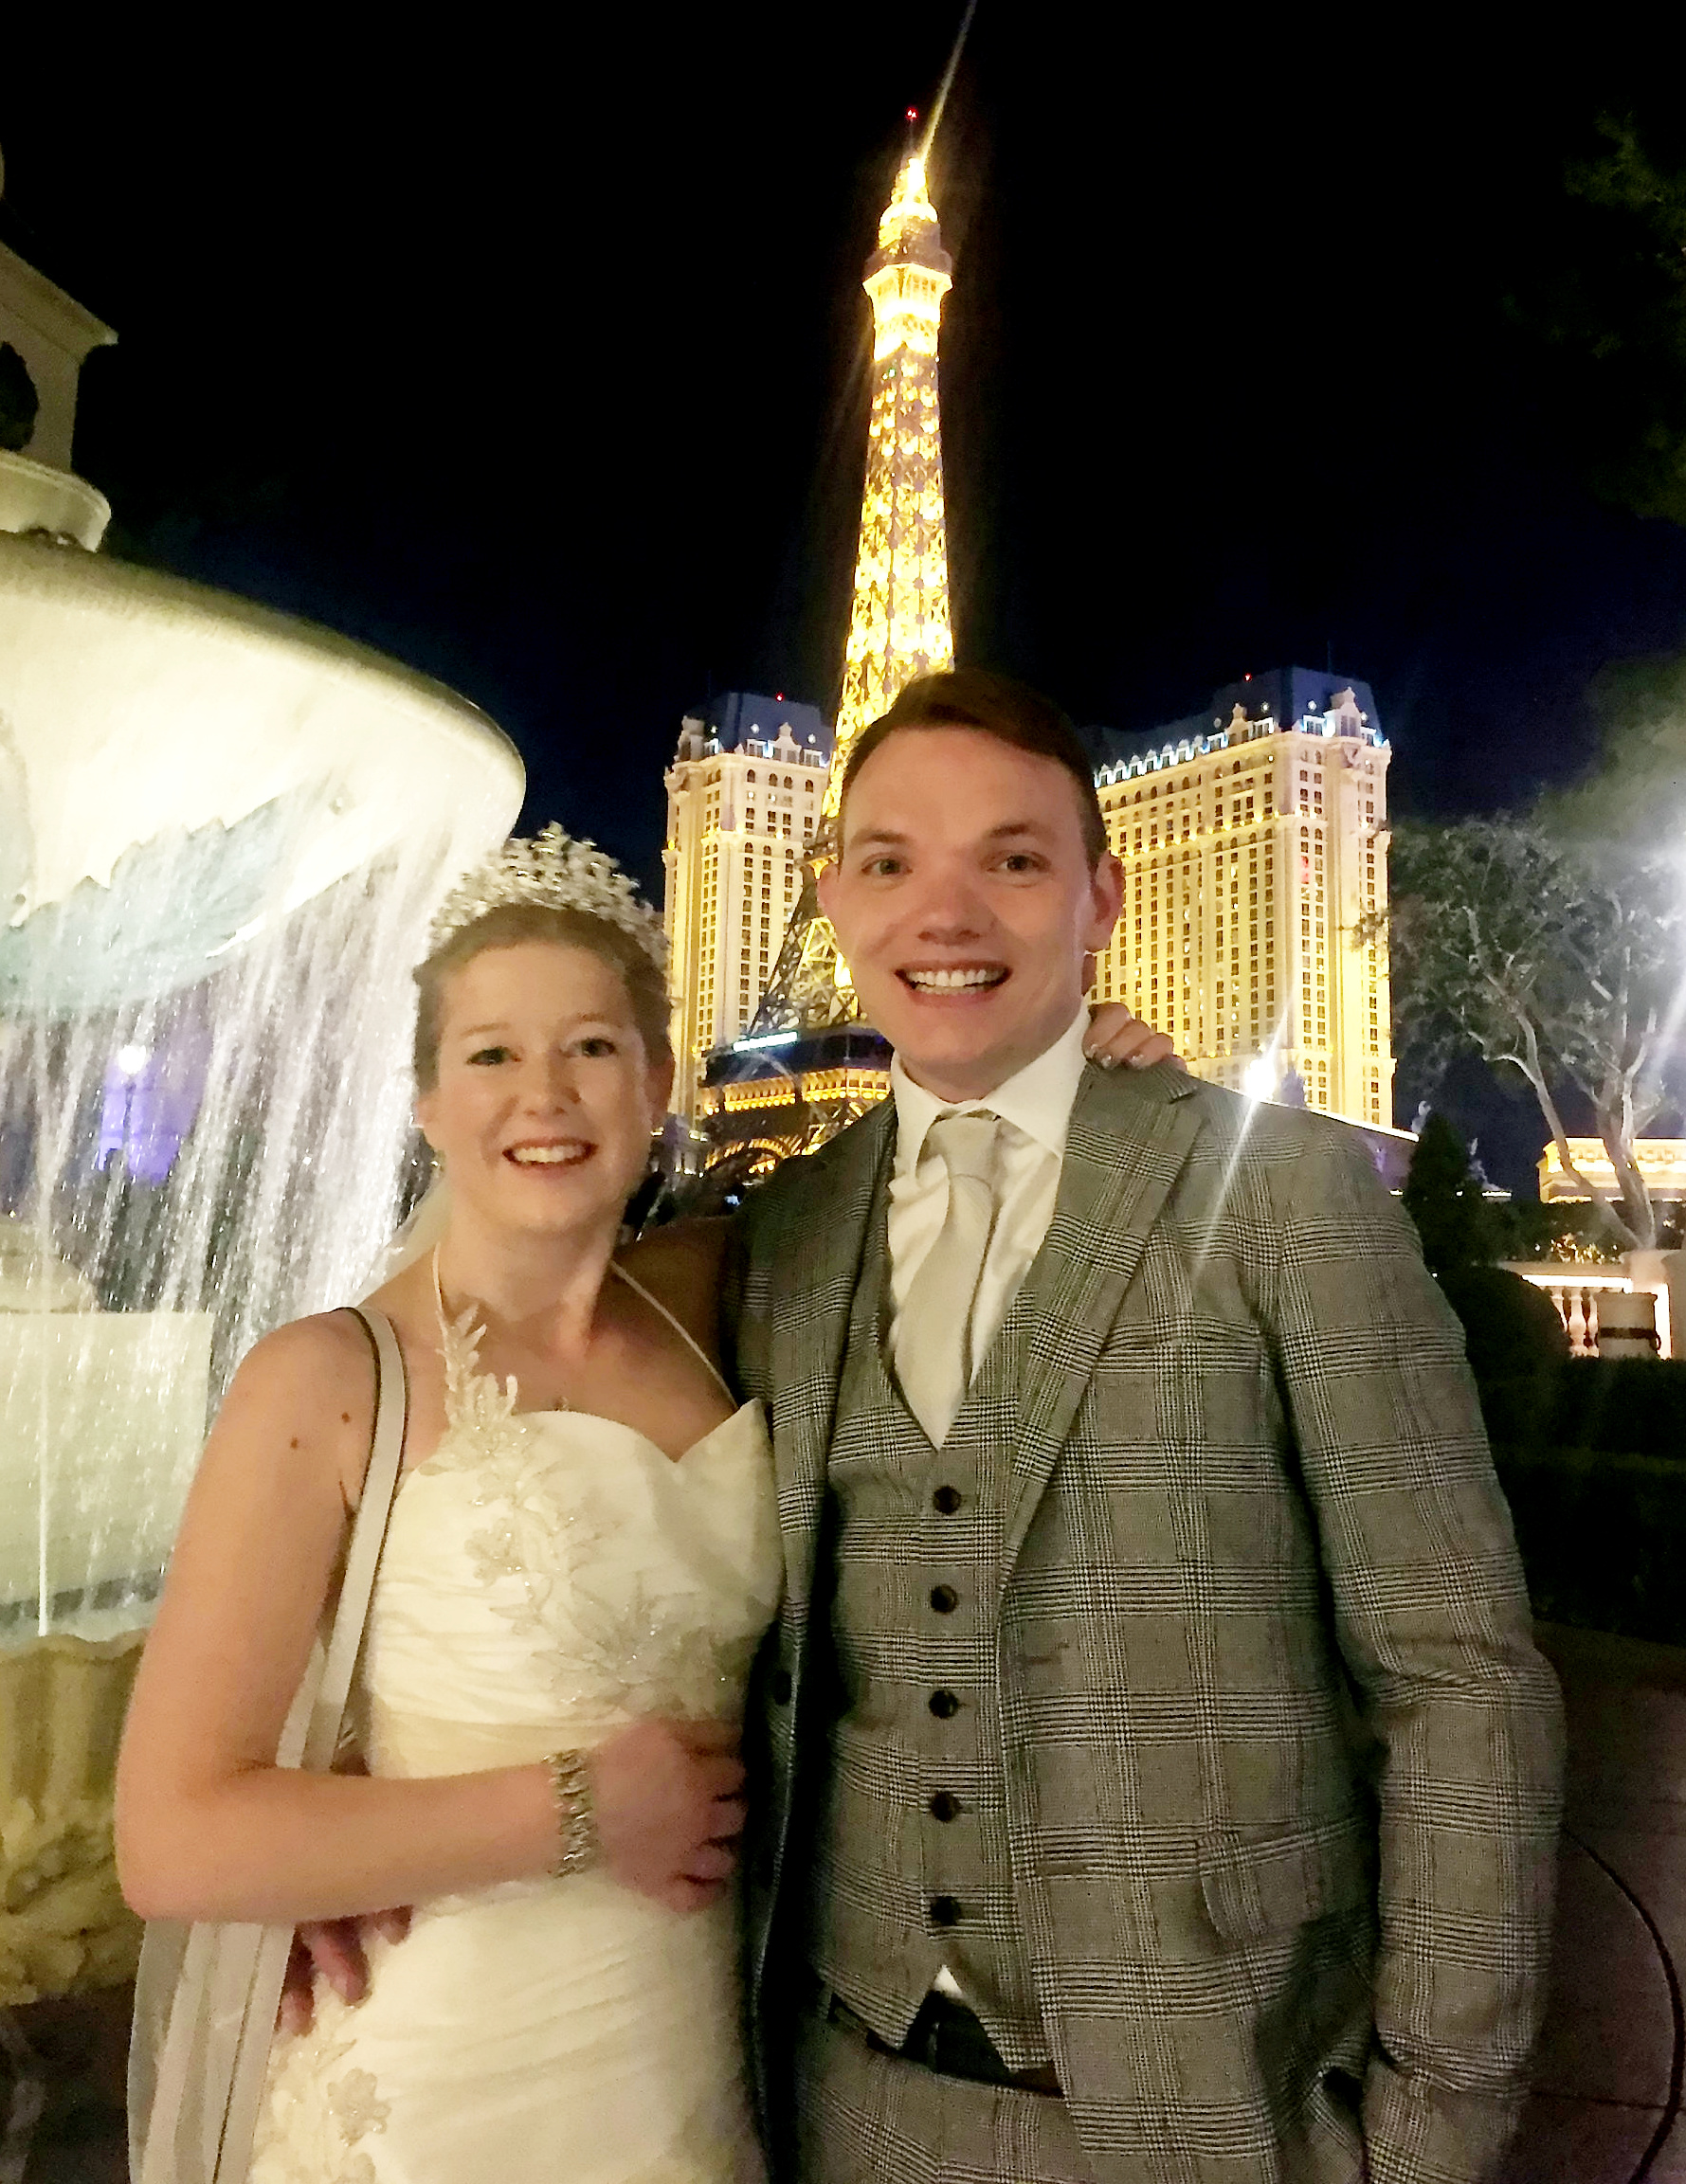 The couple got married in Las Vegas just before Christmas. Credit: SWNS